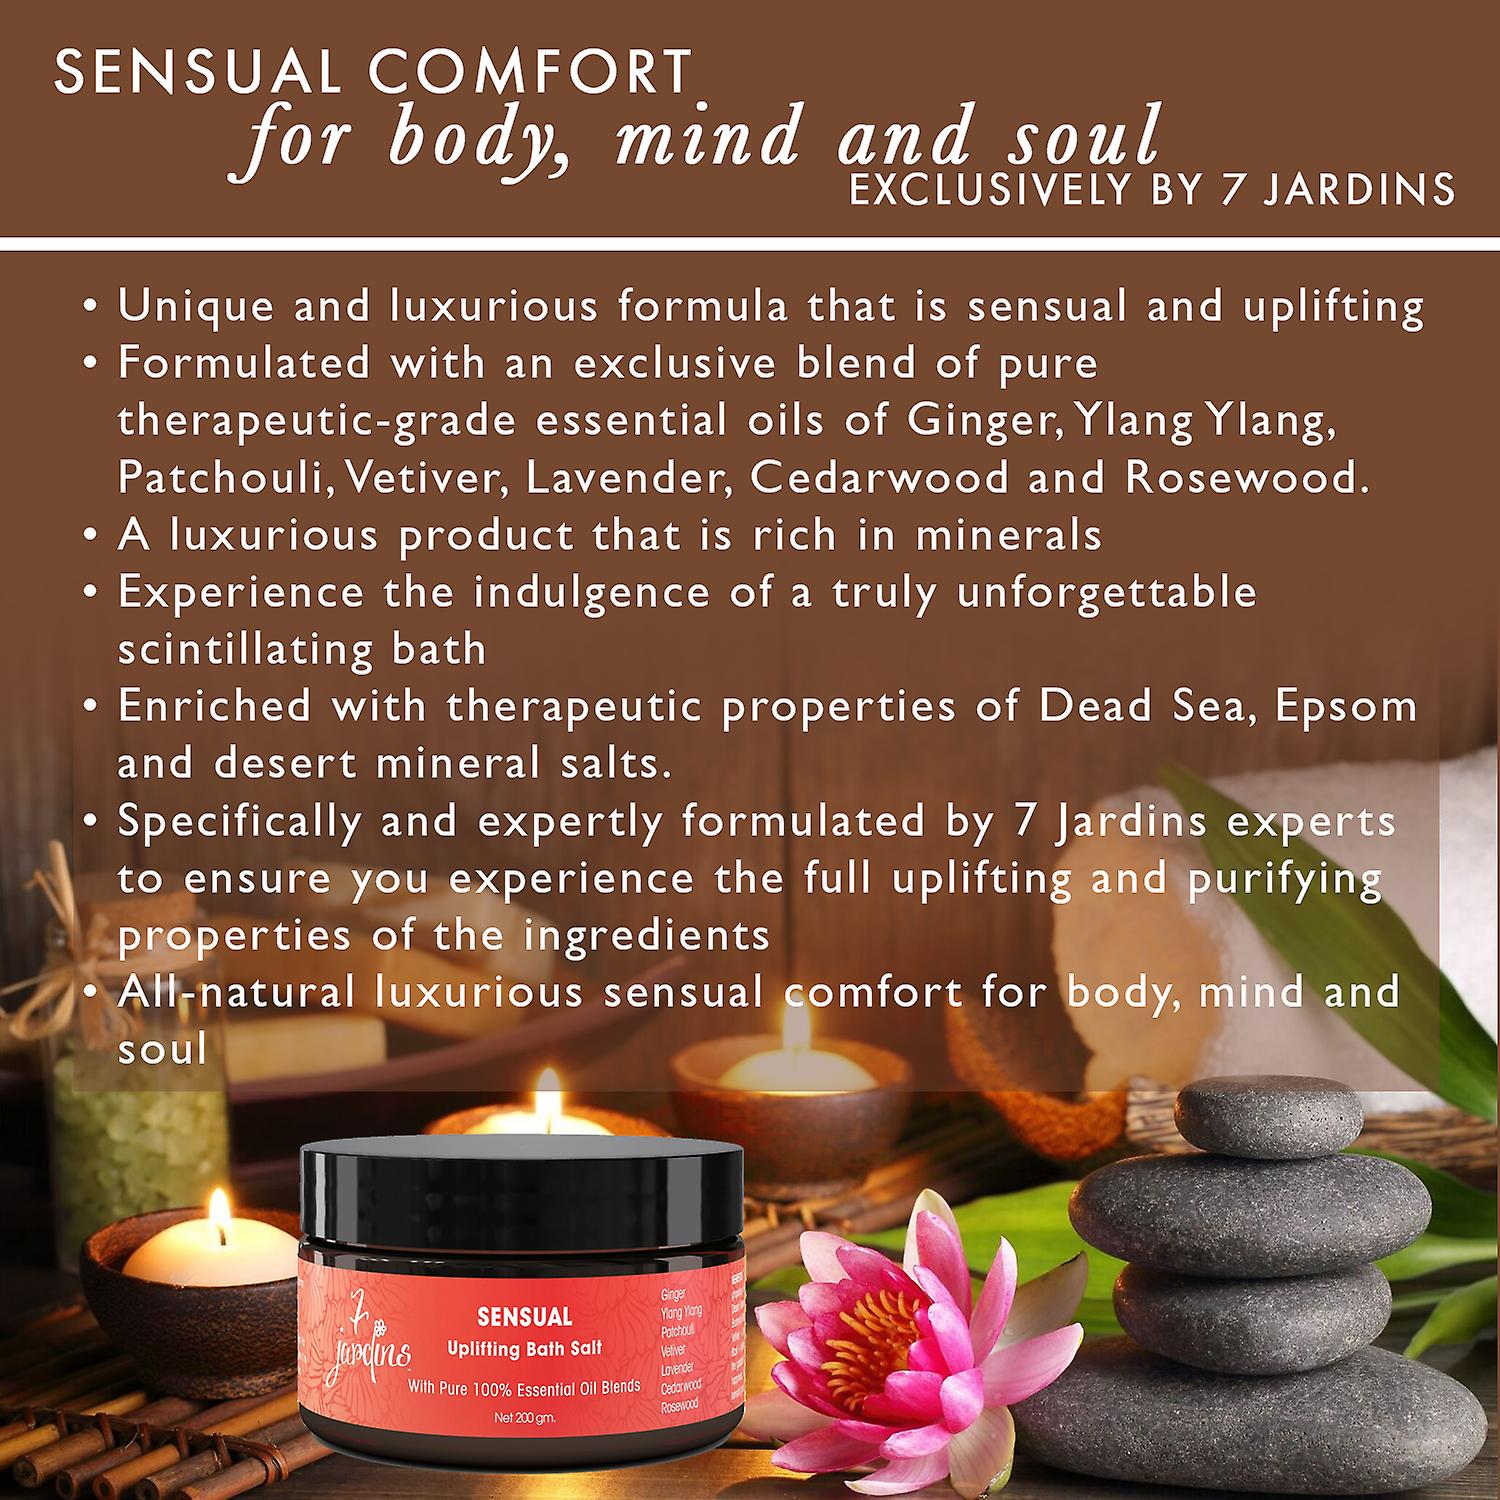 7 Jardins Sensual Uplifting Bath Salt with 100% Natural & Pure Therapeutic Grade Dead Sea and Epsom Salts with Essential Oils (Lavender, Ginger, Ylang Ylang, Cedarwood, Patchouli, Rosewood & Vetiver)